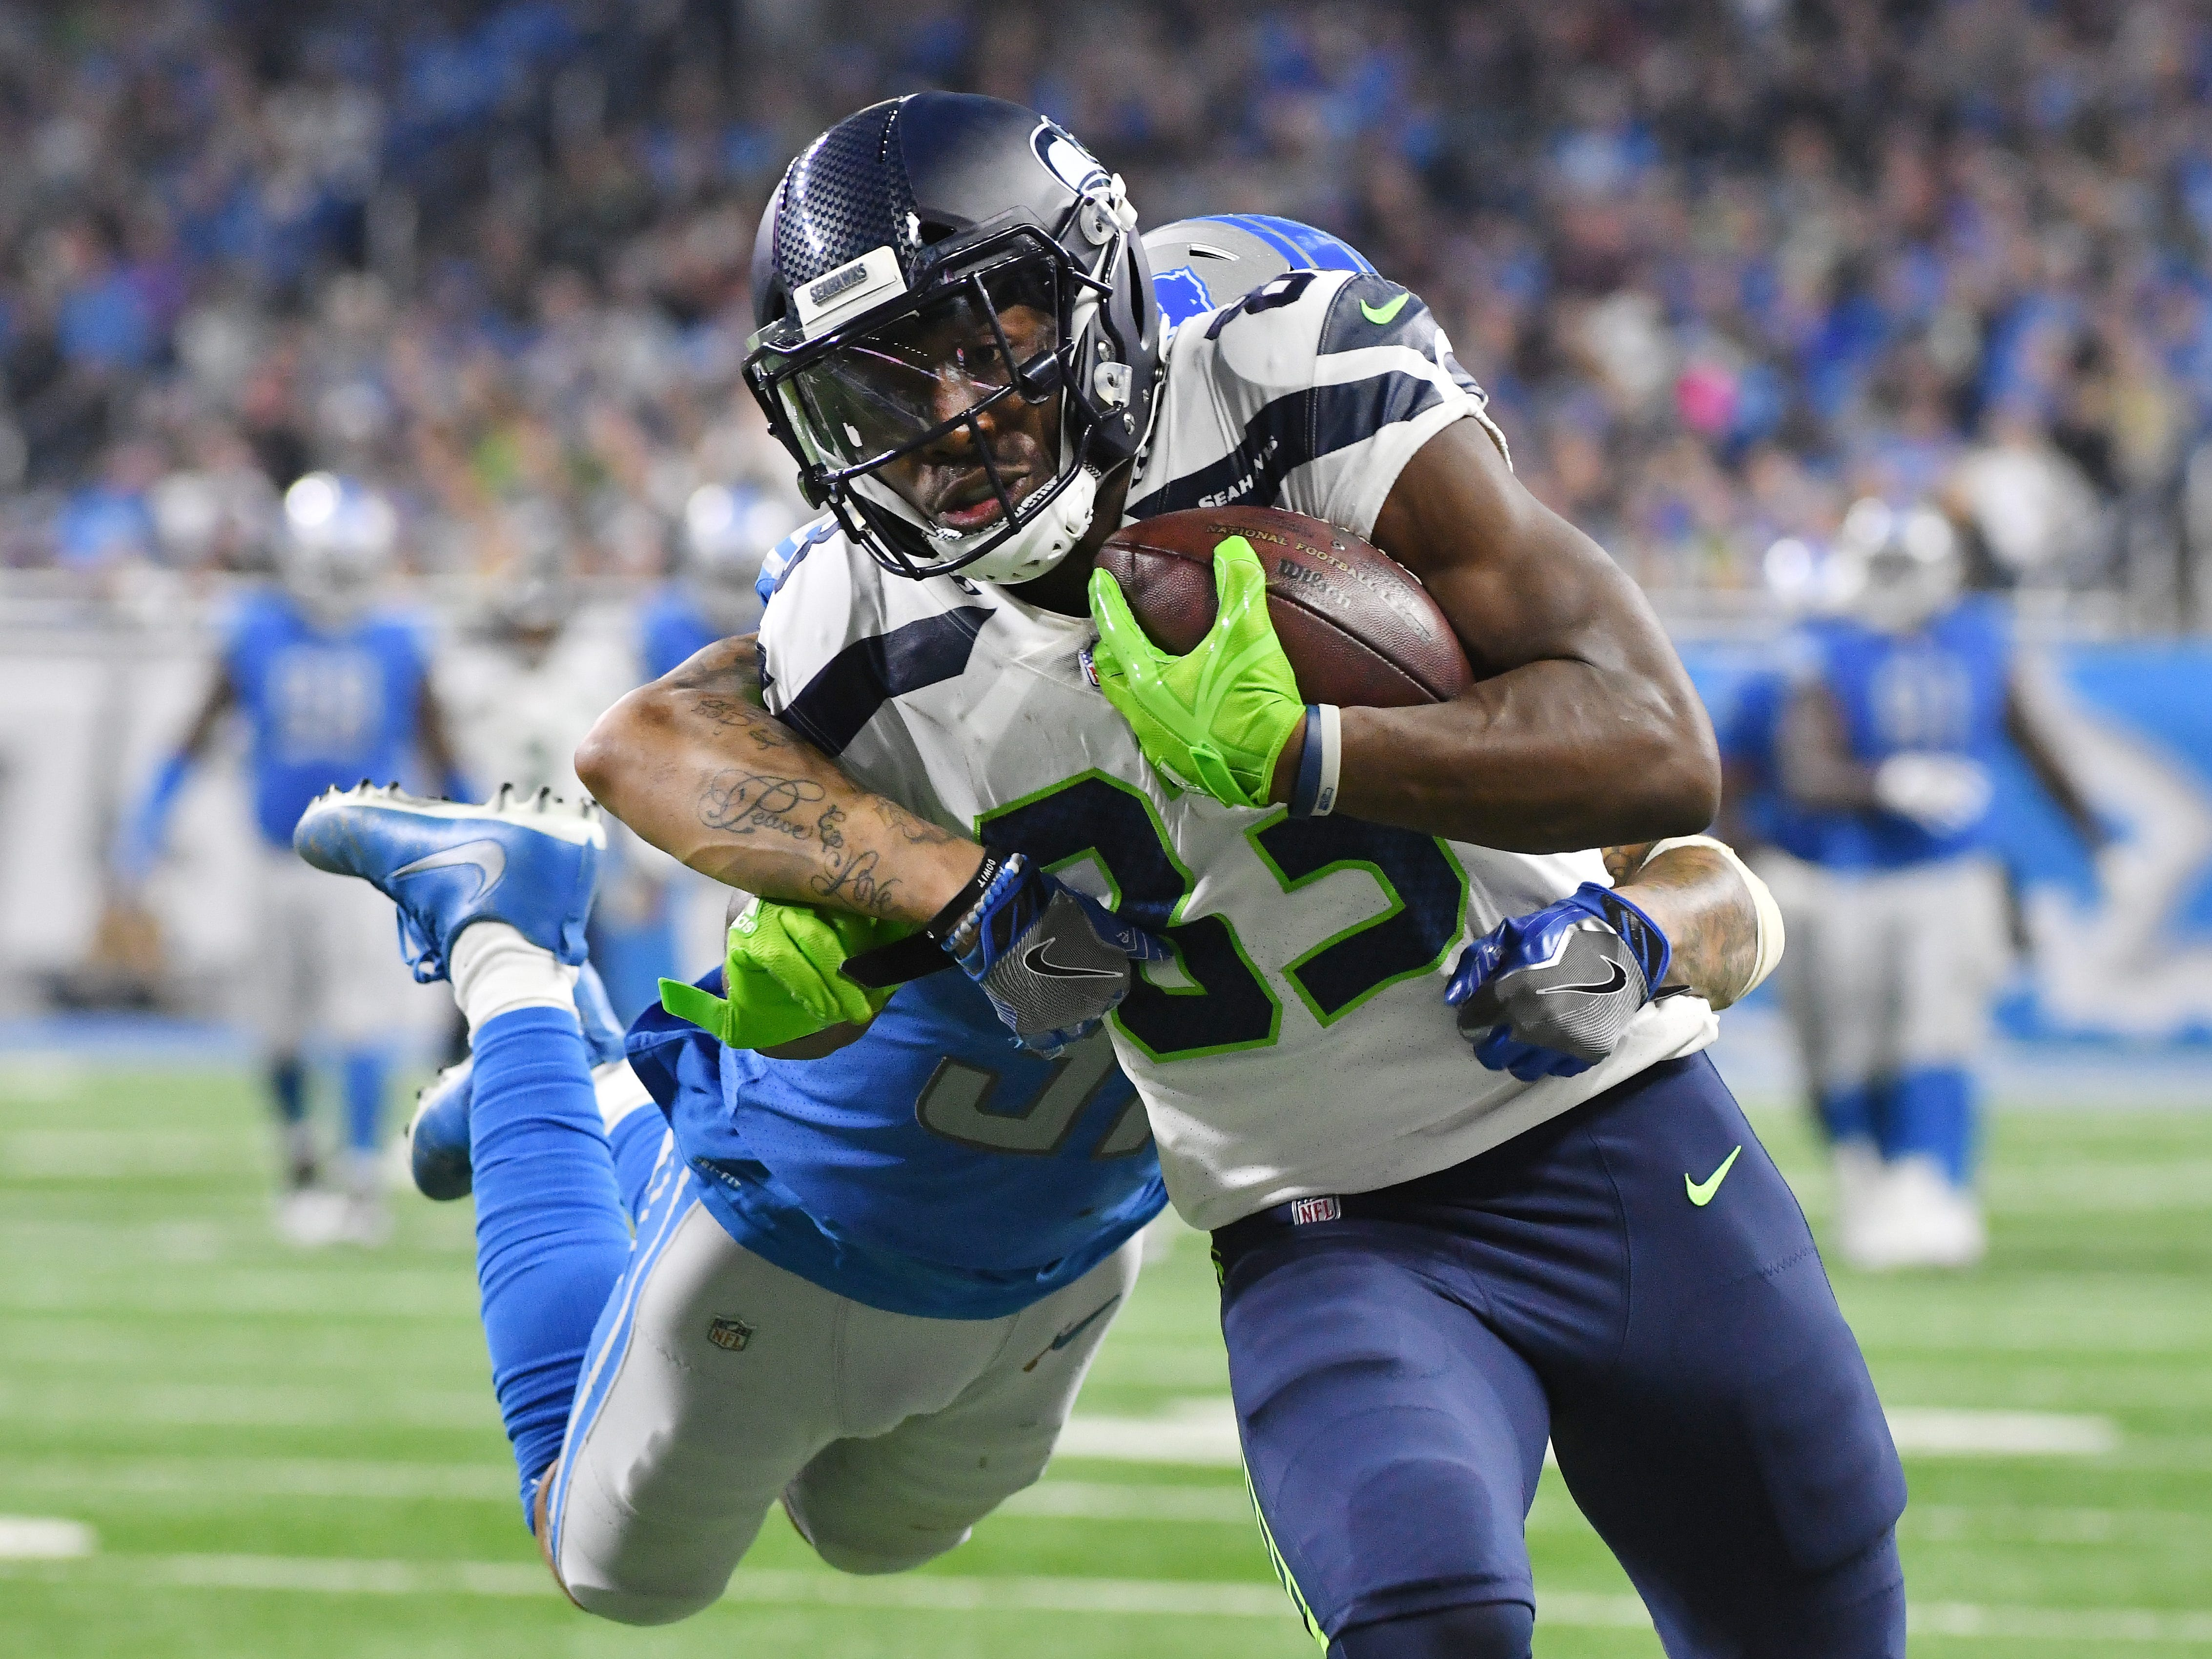 Seattles' wide receiver David Moore catches a long first down pass from quarterback Russell Wilson in front of Lions' Tees Tabor in the fourth quarter.